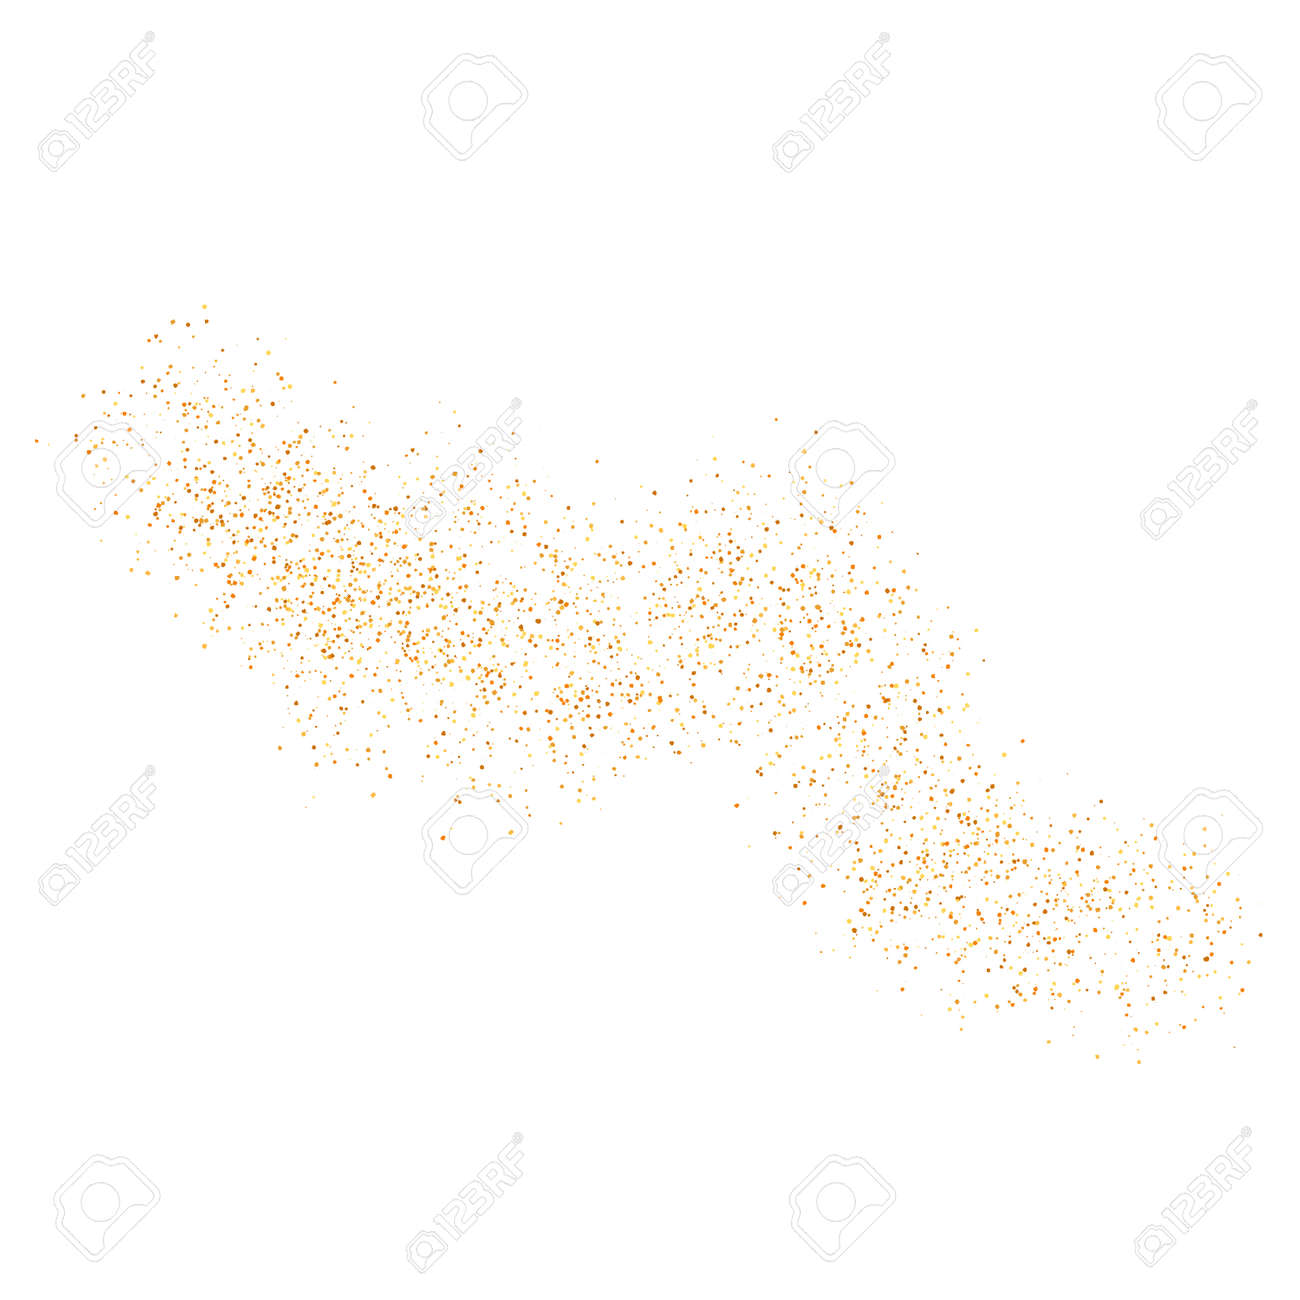 The texture of golden sand on a transparent background. Vector illustration. - 159234768